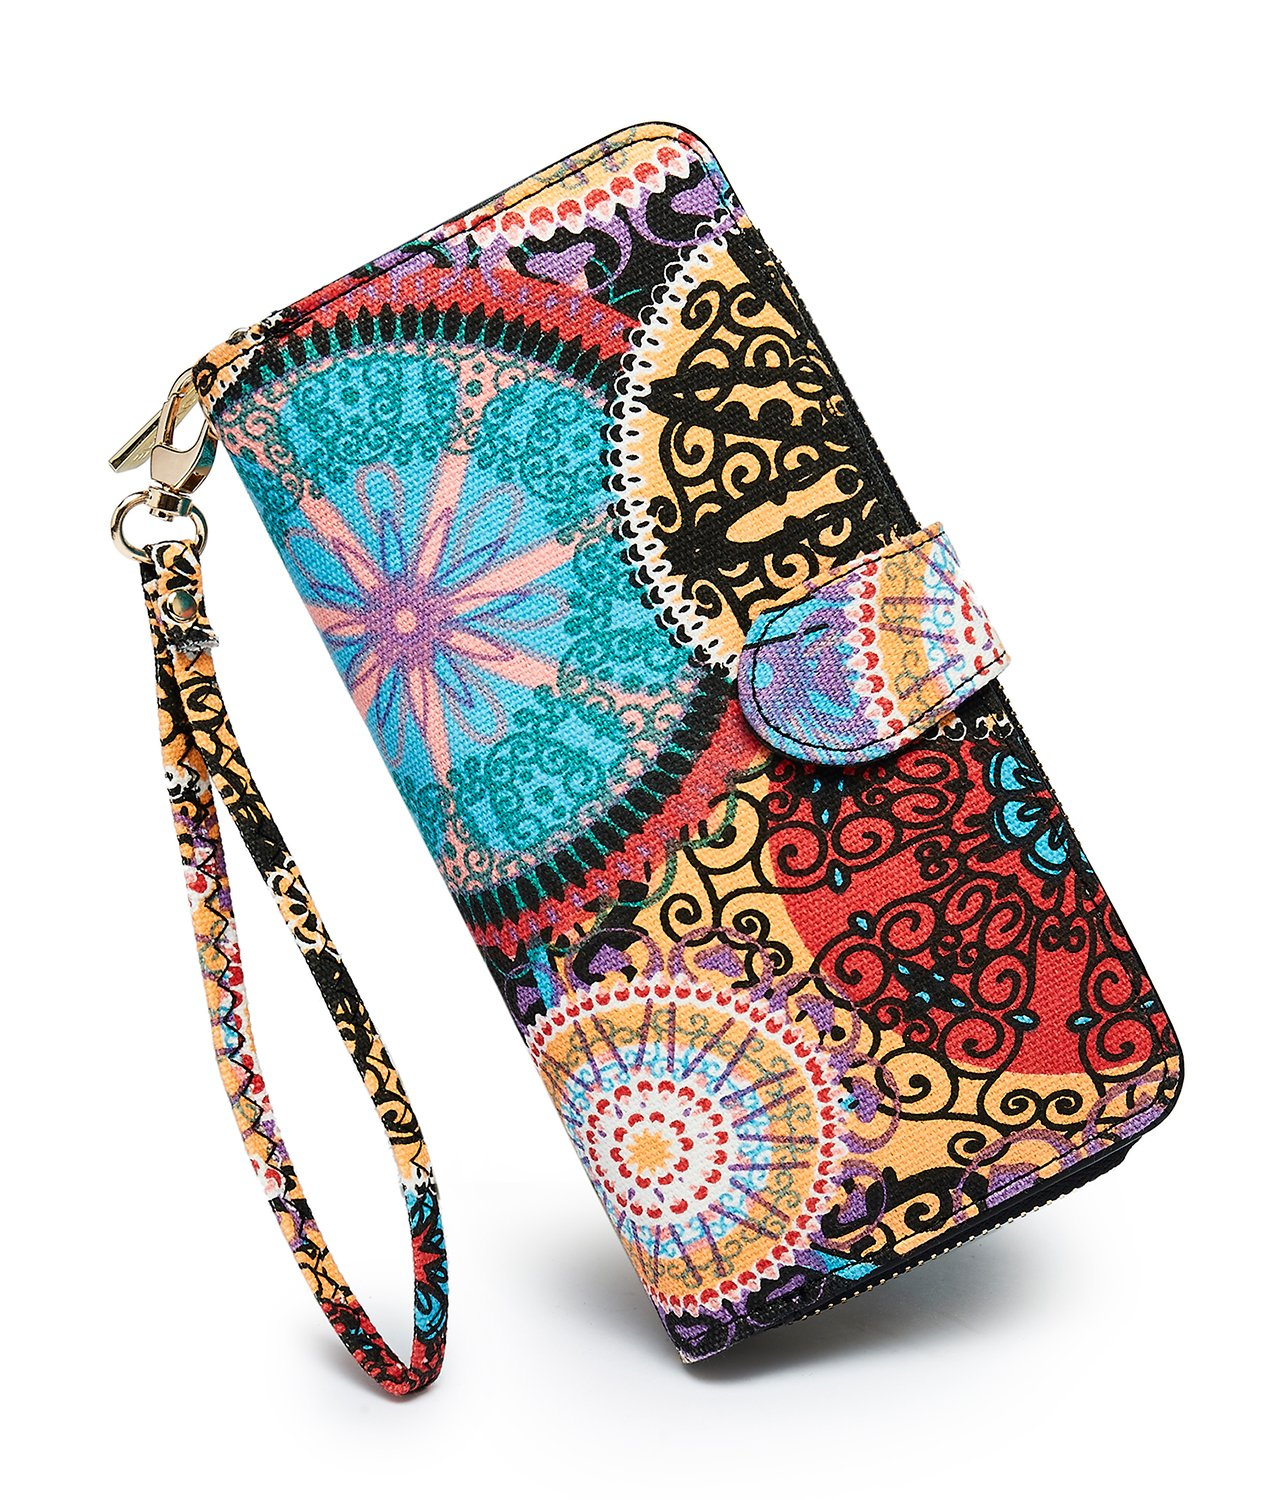 LOVESHE Women's New Design Bohemian Style Bifold Canvas Purse Clutch Wallet Card Holder New Fashion by LOVESHE